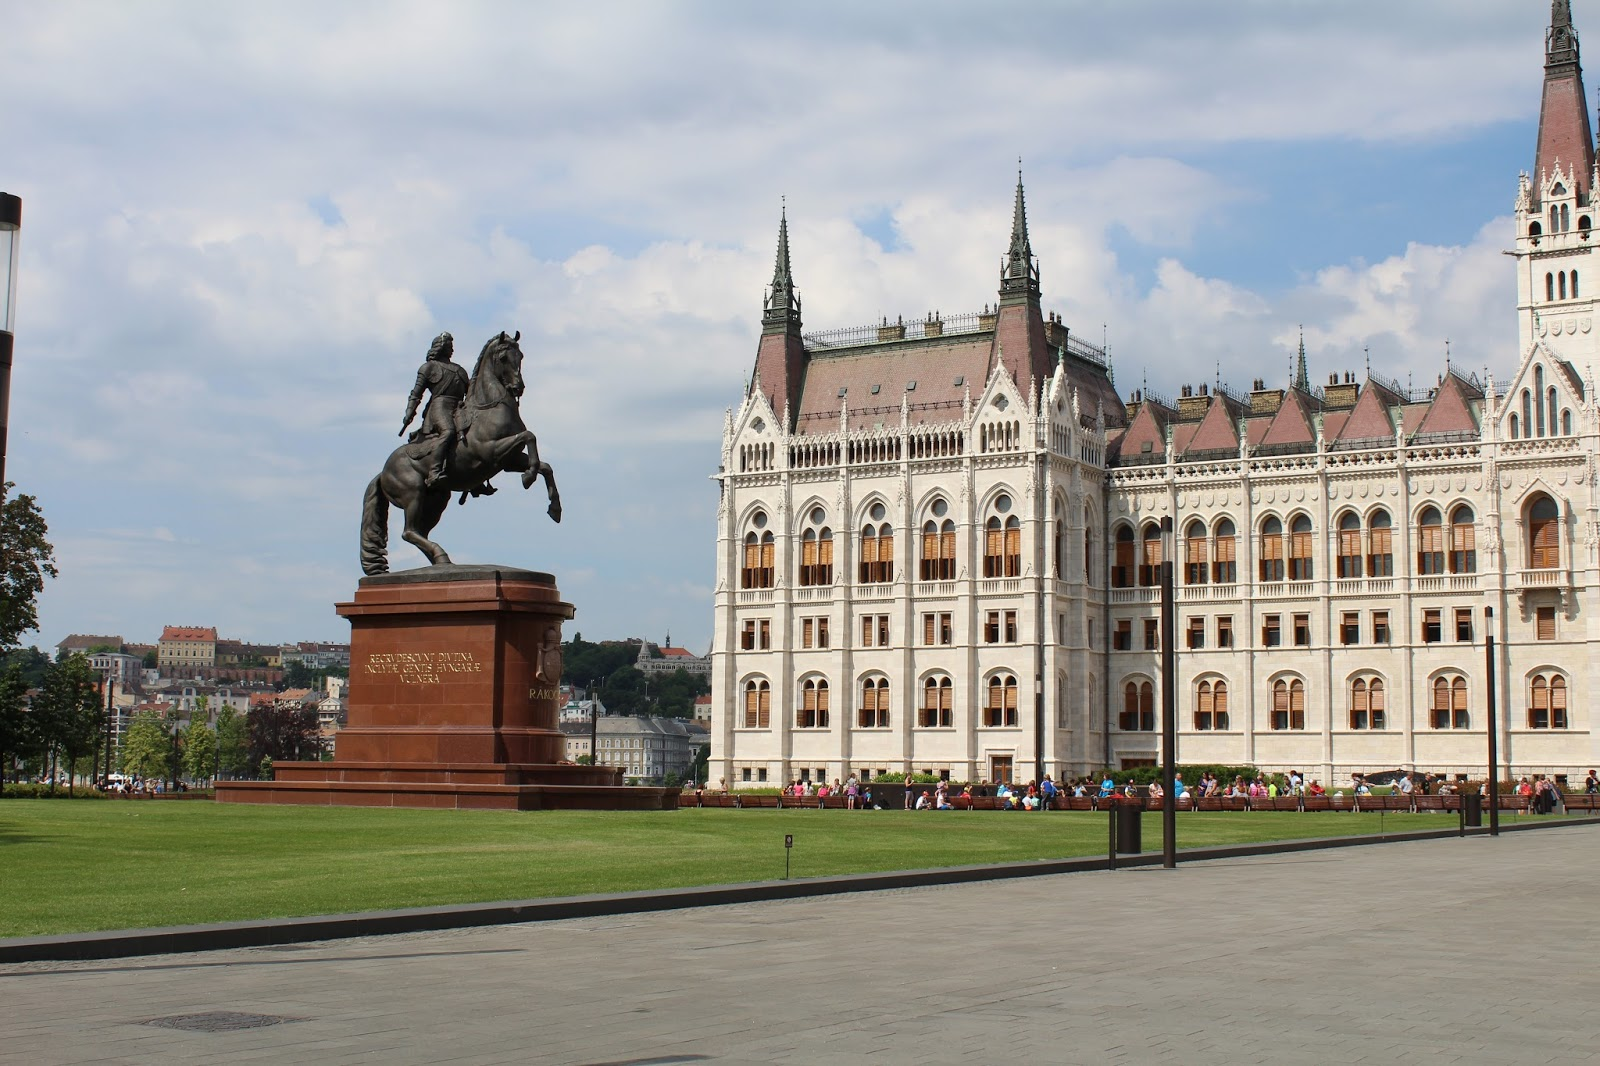 Statue and Hungarian Parliament Building, Budapest